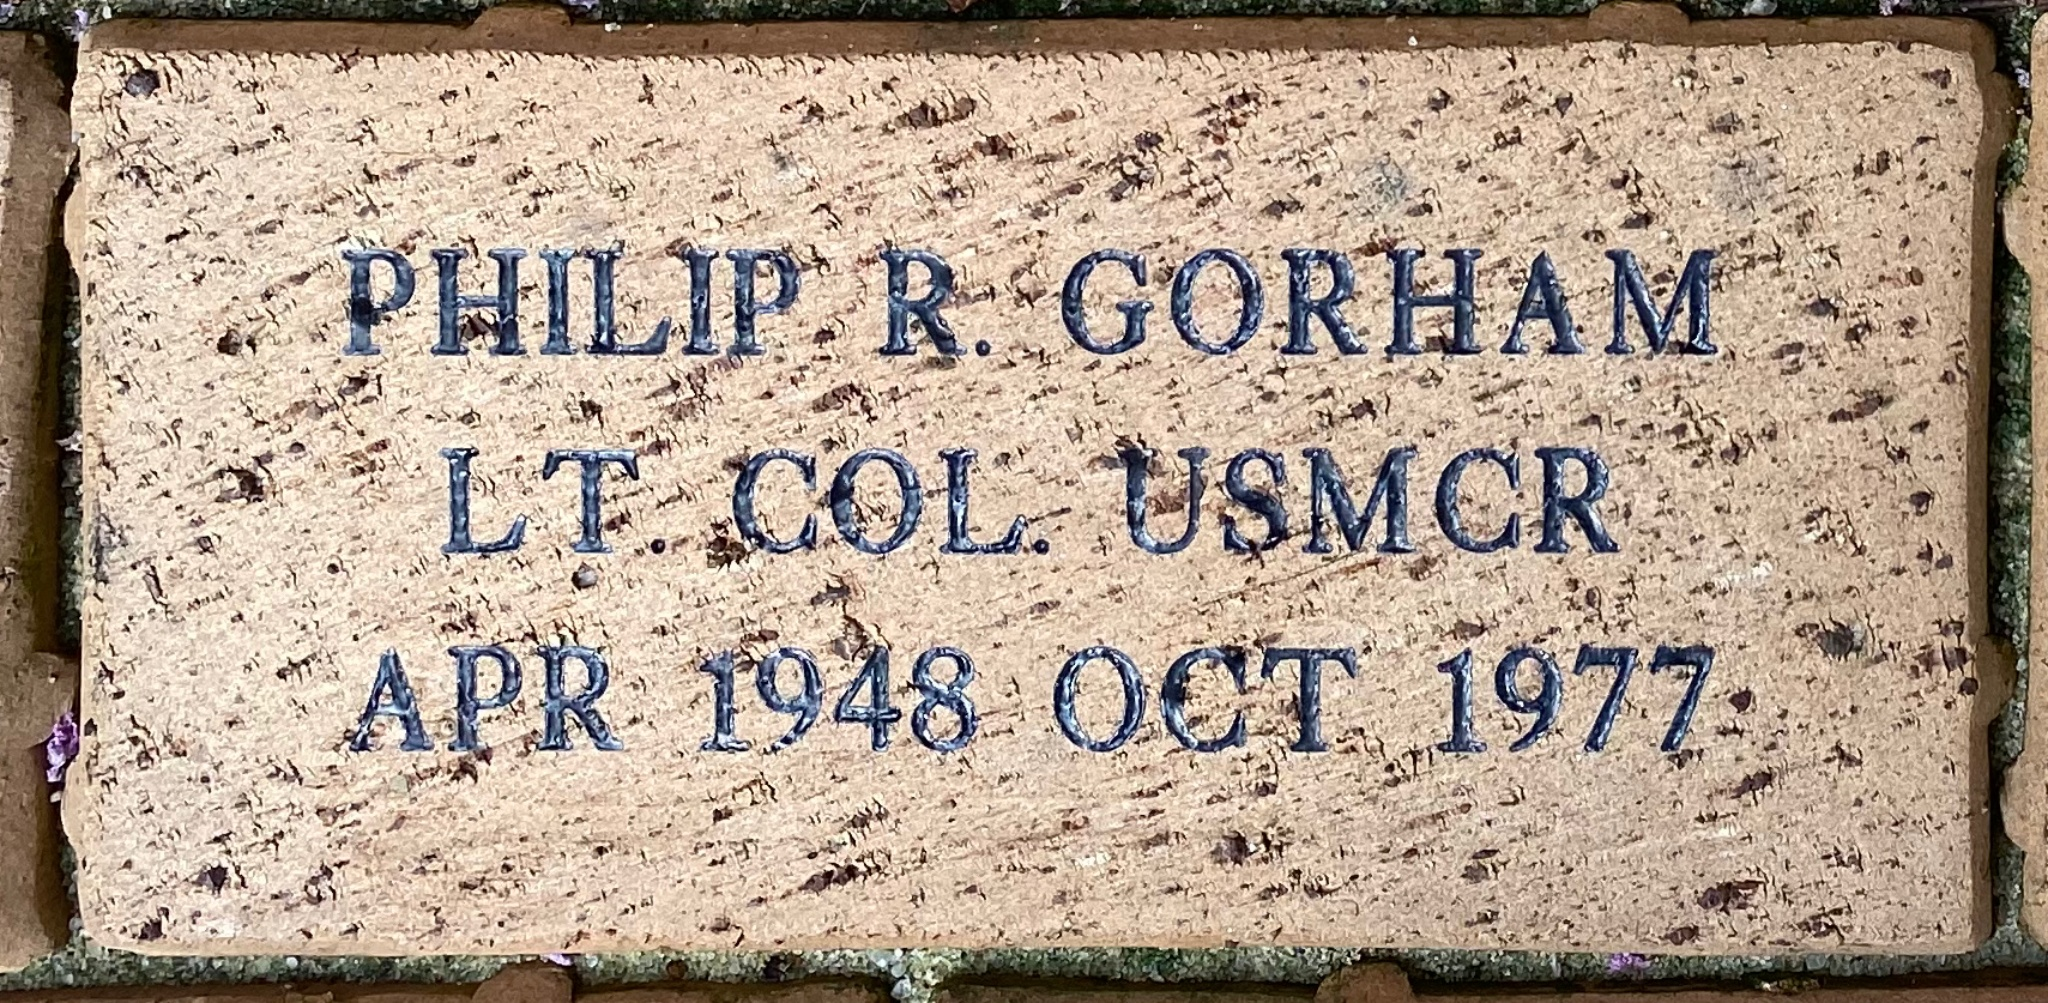 PHILIP R. GORHAM LT. COL. USMCR APR 1948 OCT 1977